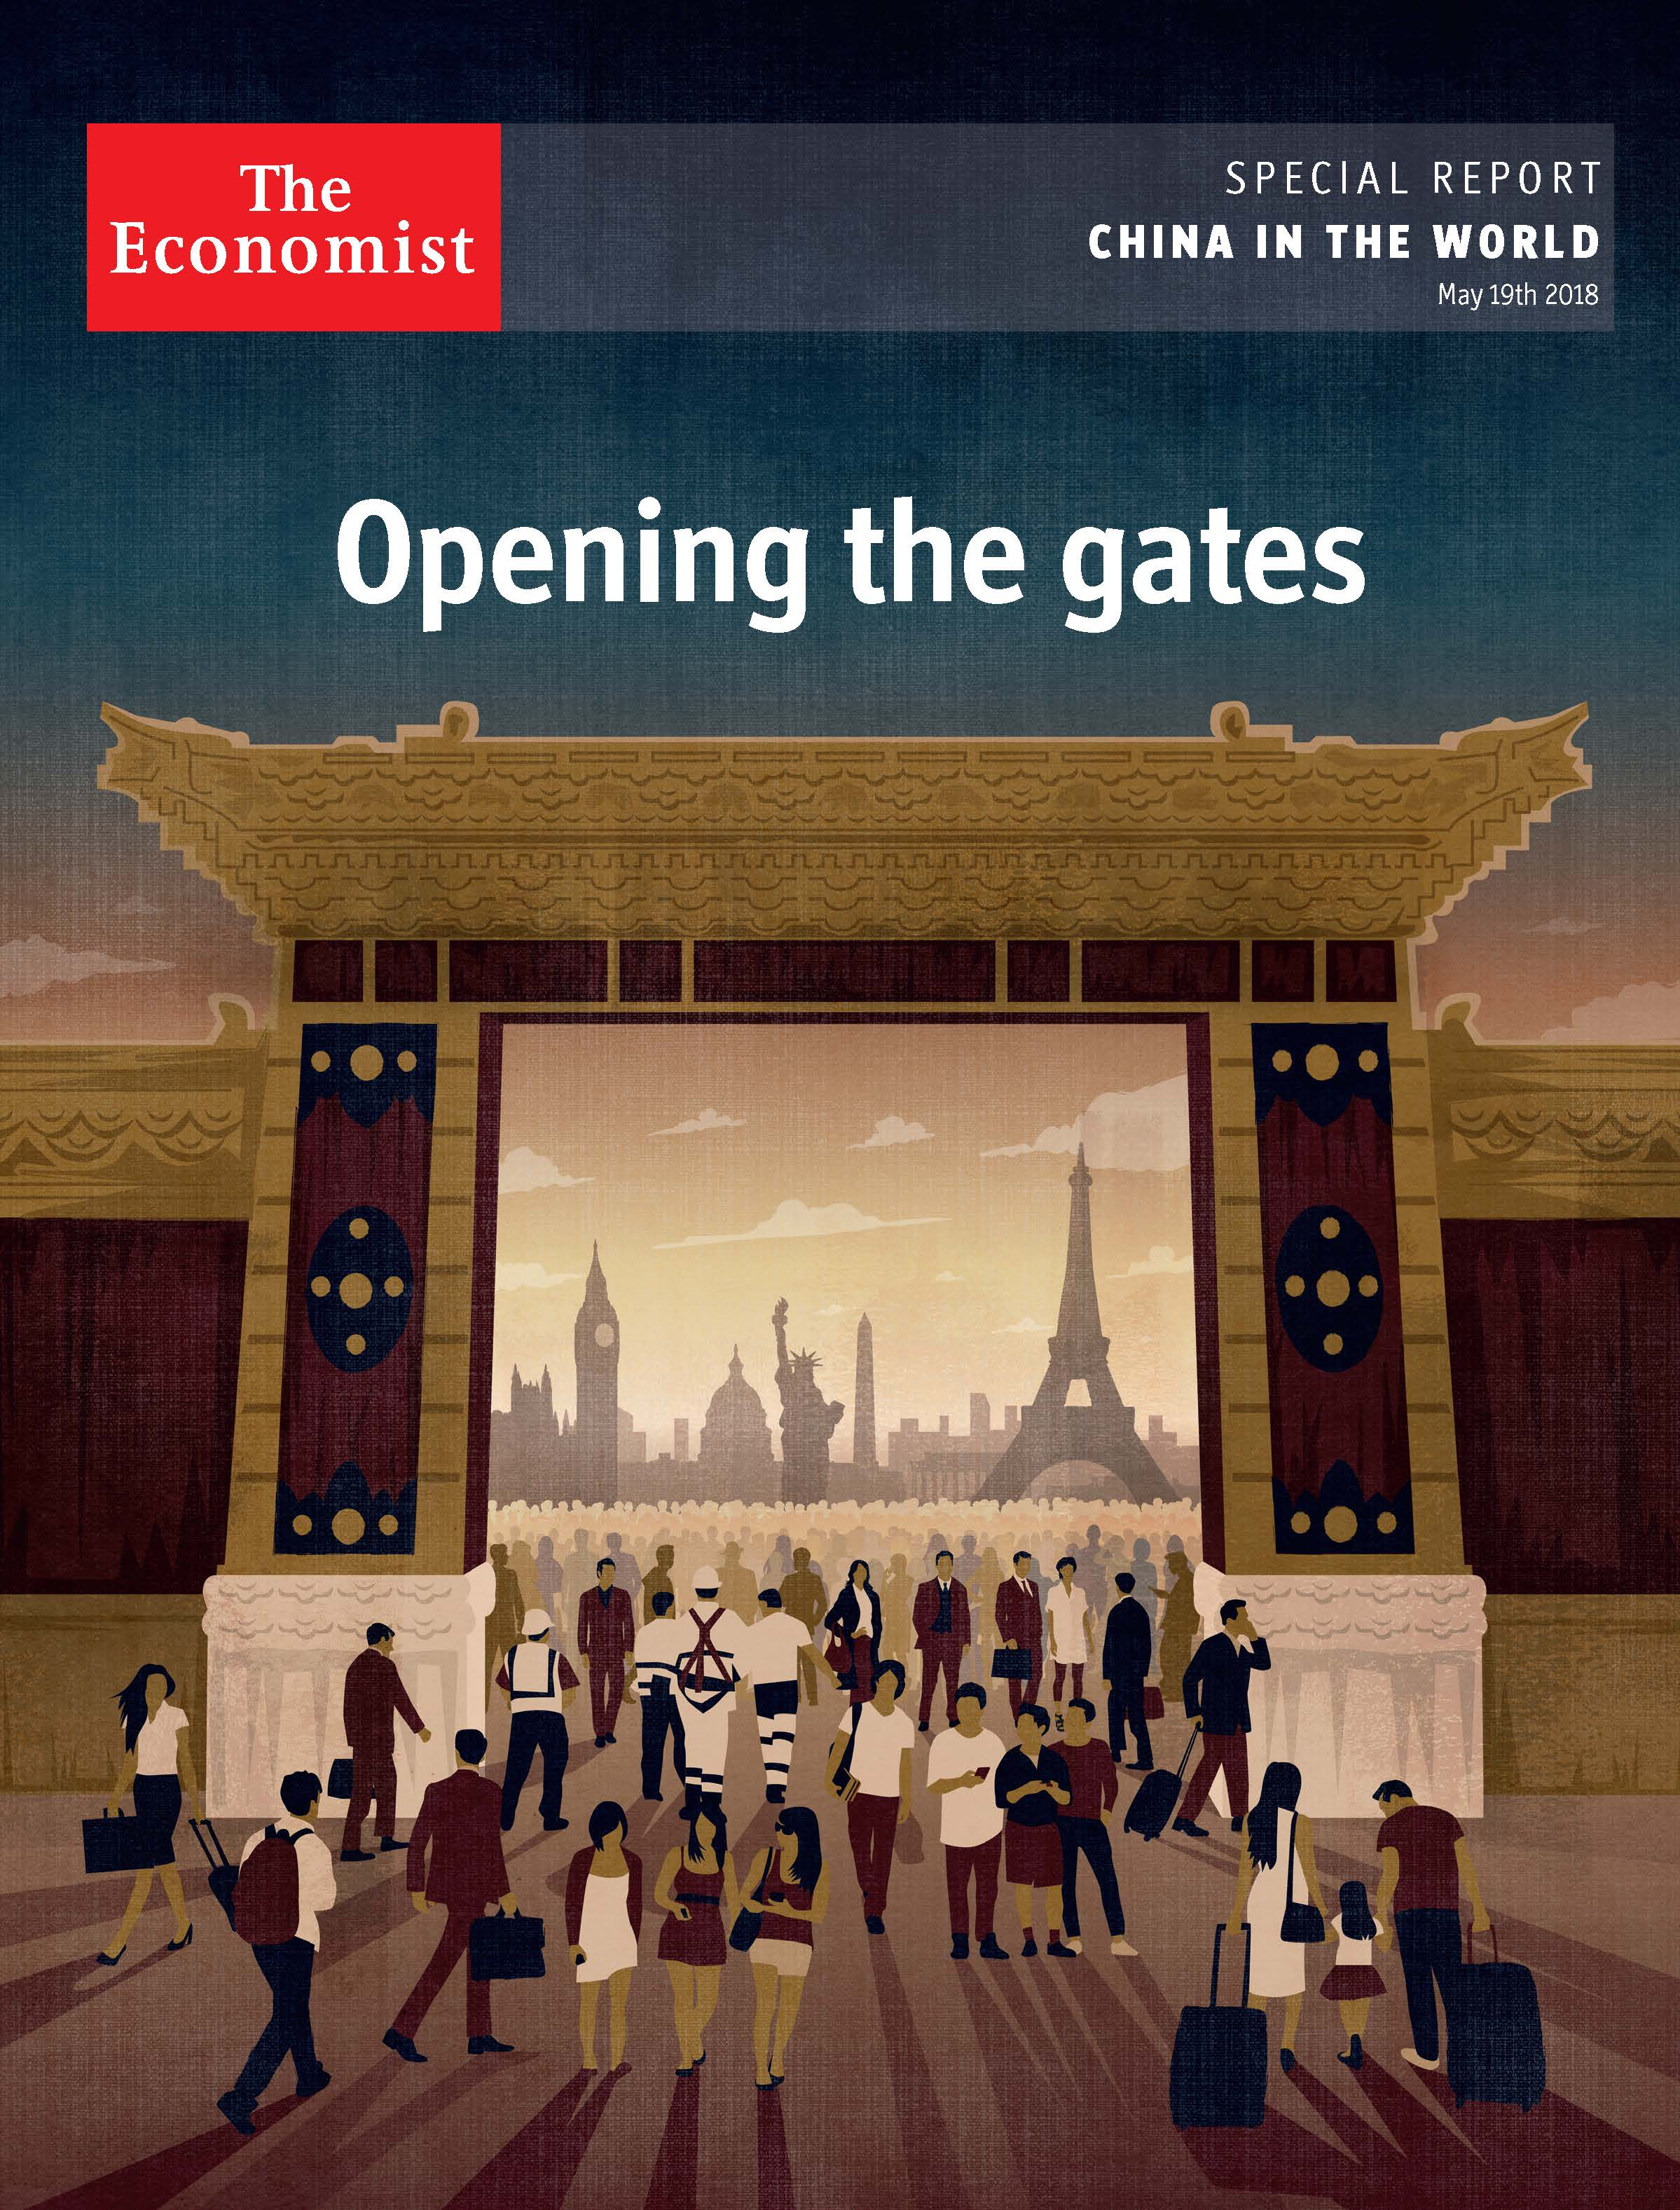 Special report on China in the world